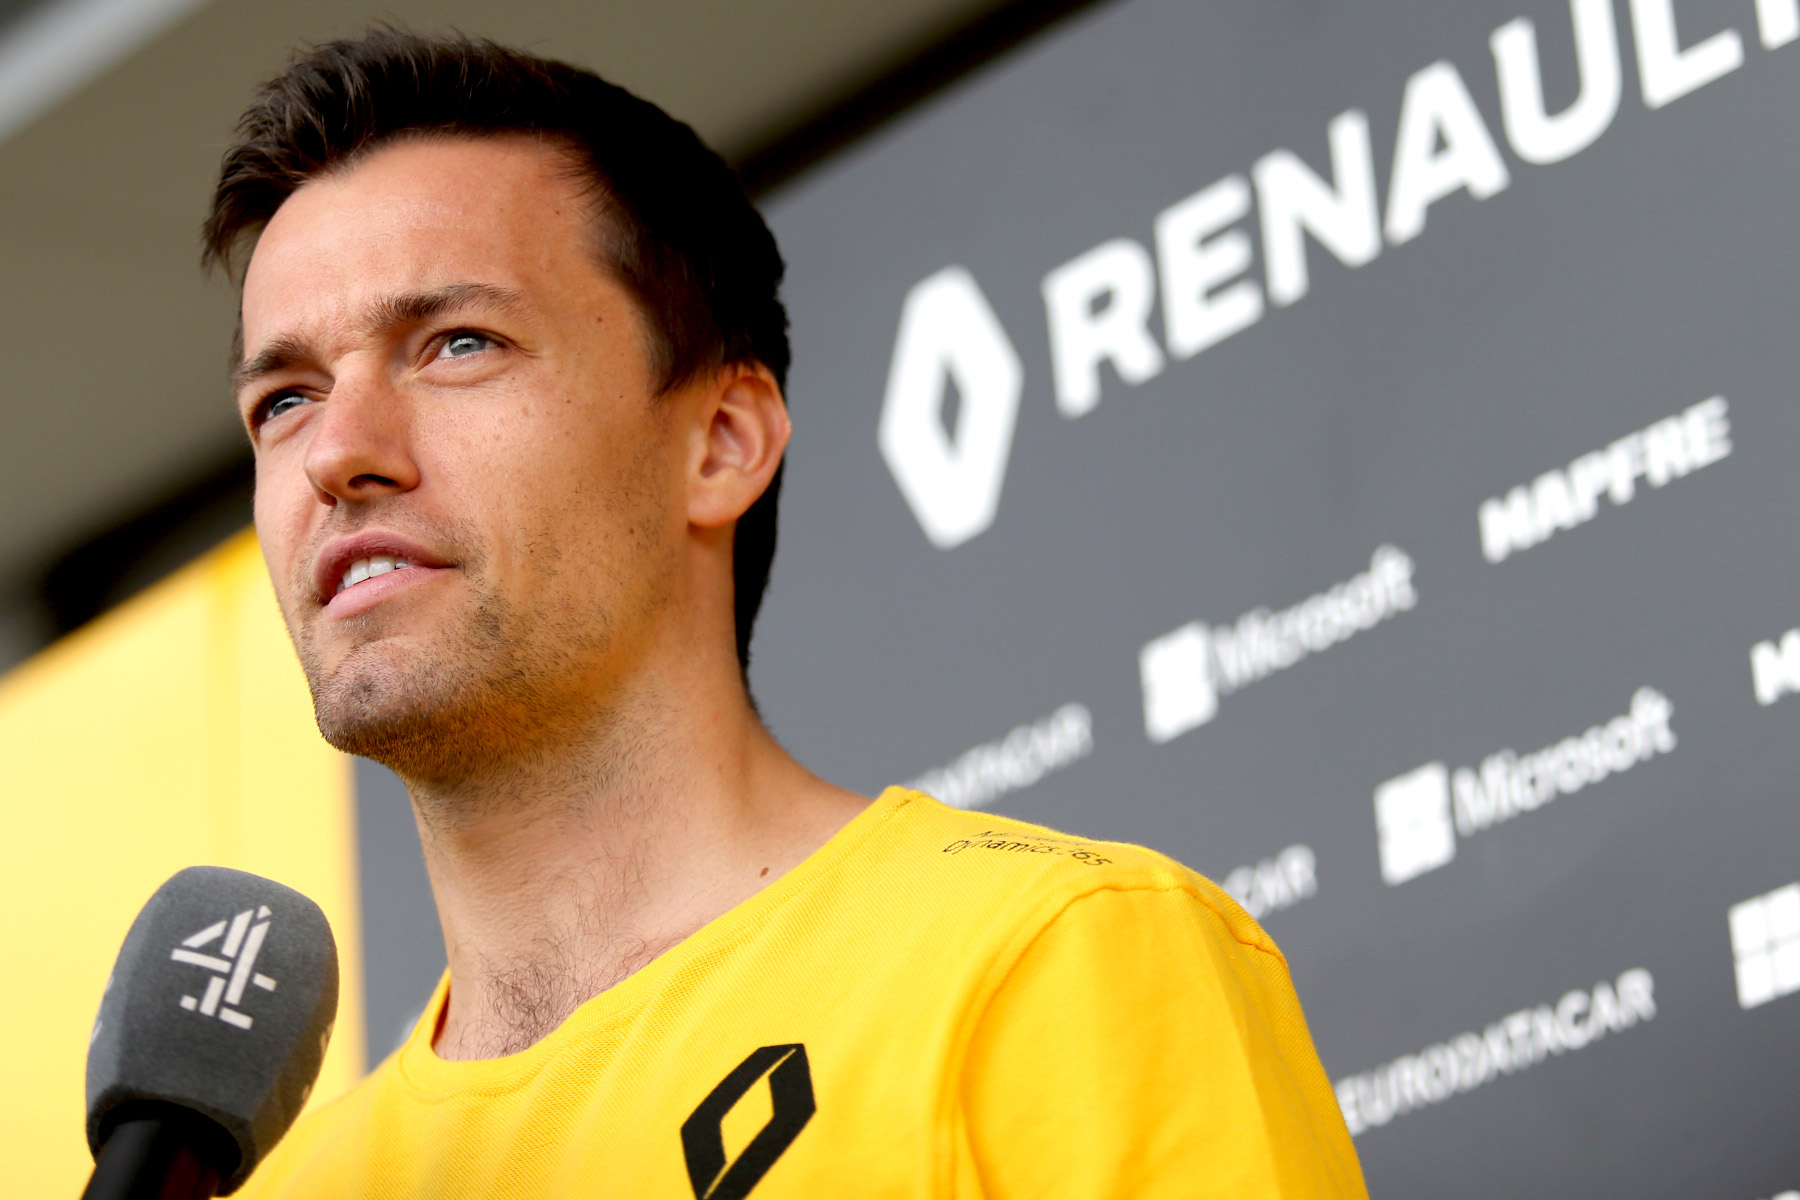 Jolyon Palmer speaks to reporters at the 2017 Japanese Grand Prix.